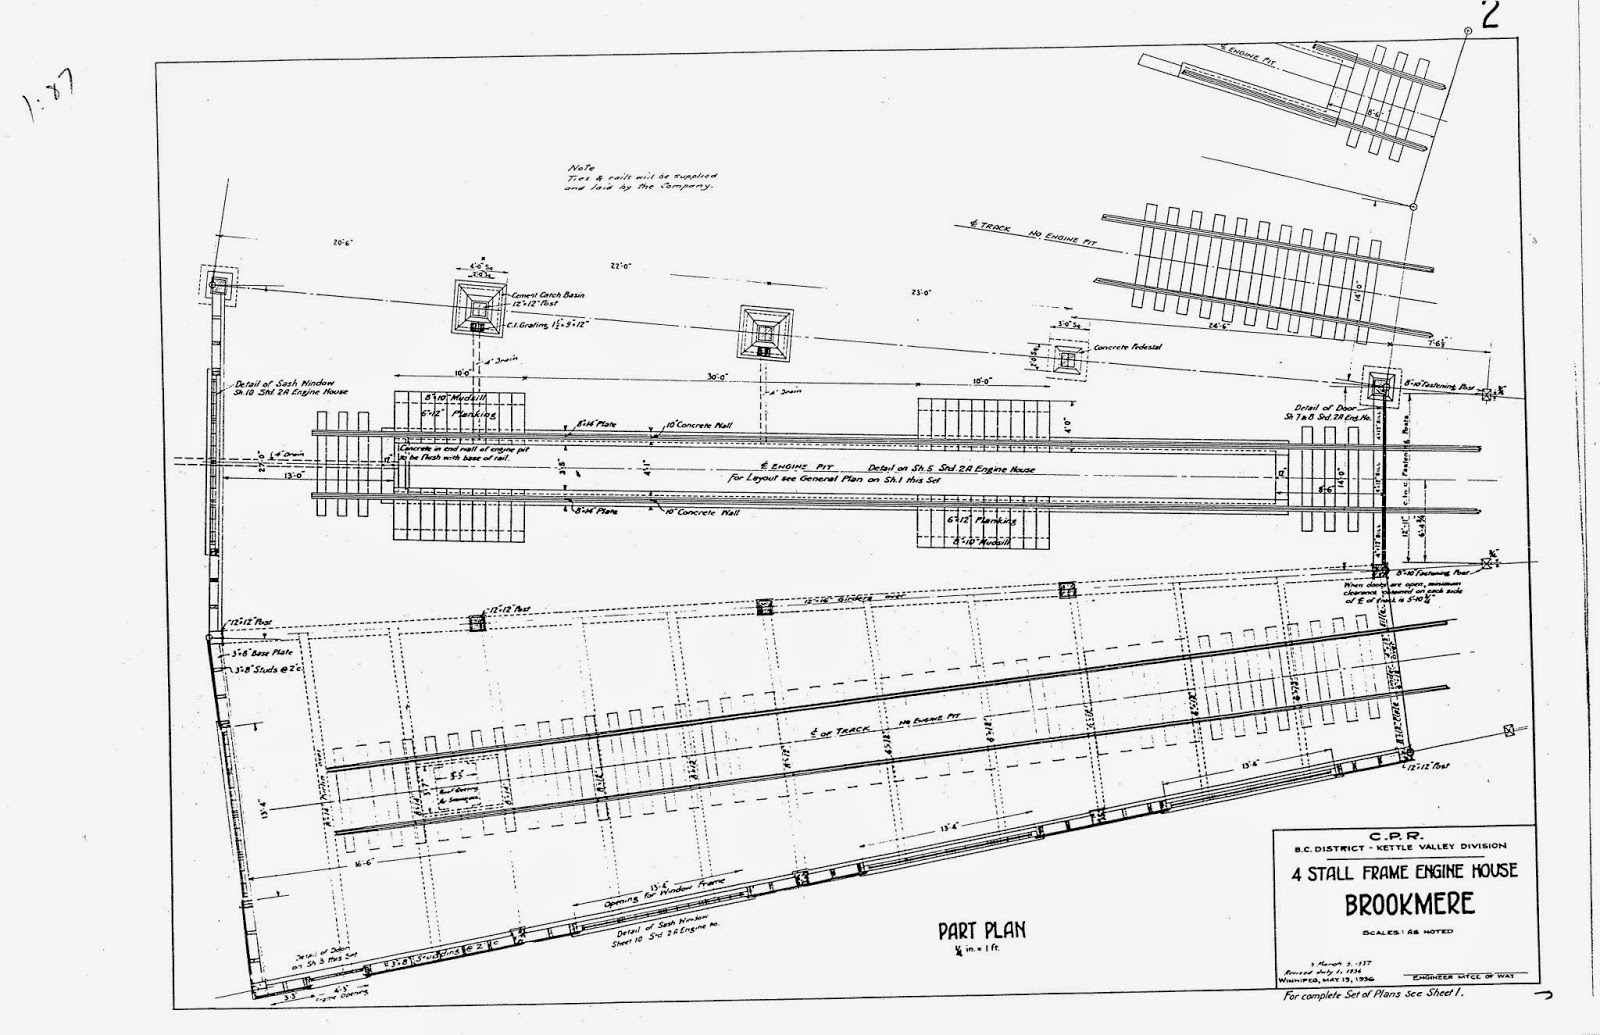 Kettle Valley Model Railway Brookmere Roundhouses I Ii 427 Engine Diagram This Third Sheet Shows The Outside Wall Called End On Drawing With Internal Framing That Is Similar To Posts And Bracing Shown In First